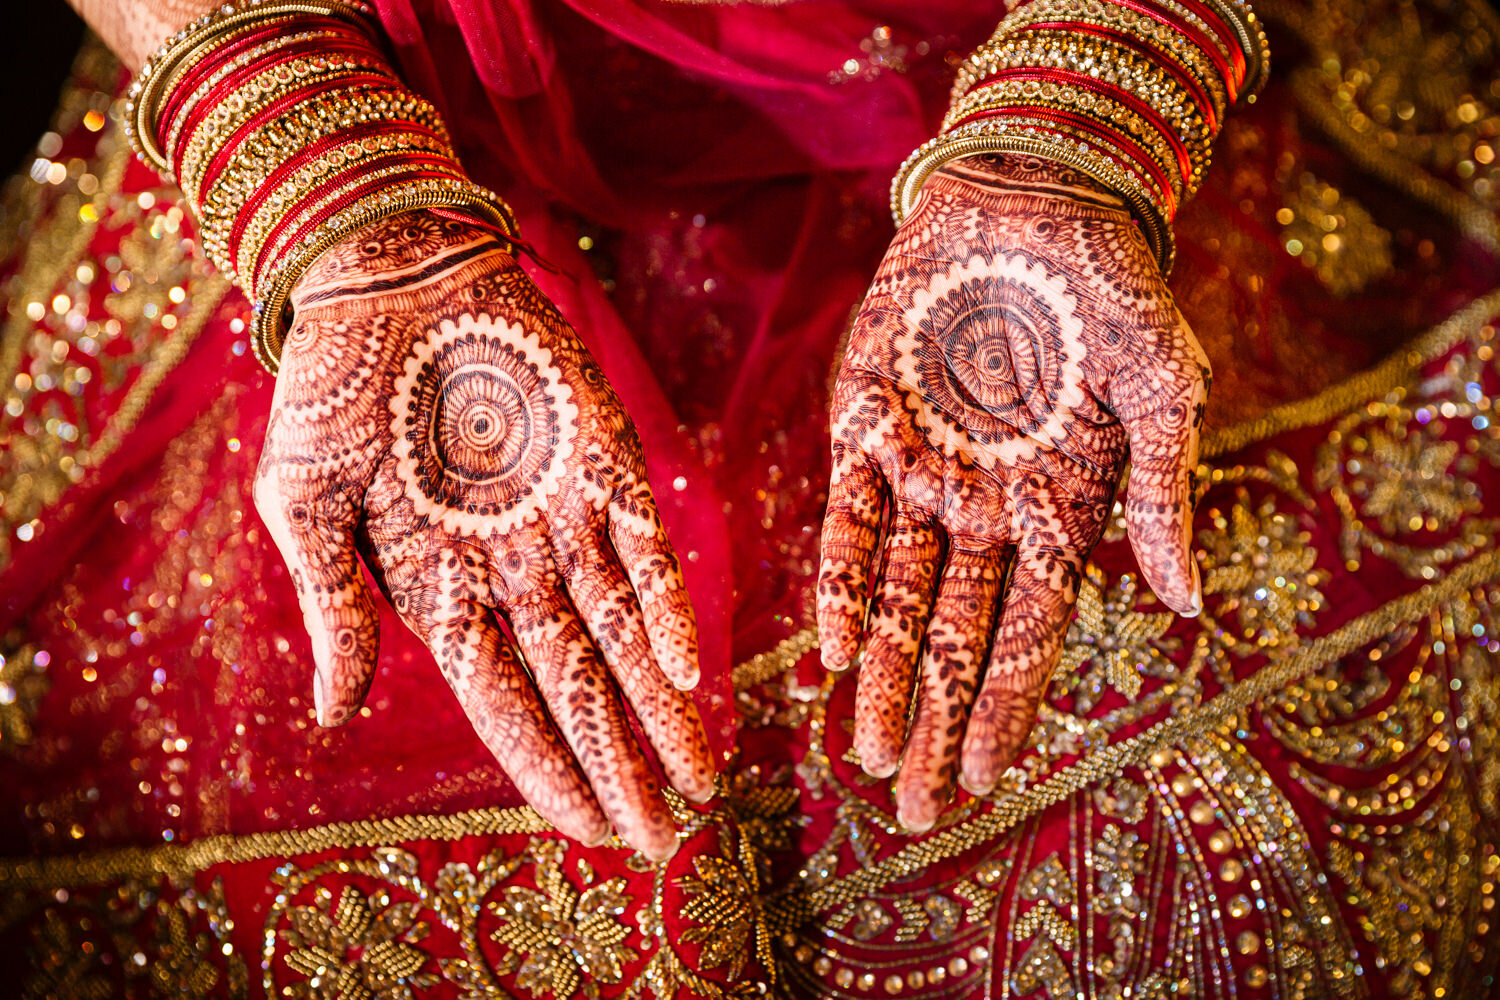 austin-texas-indian-wedding-photographer-edward-bennett-1.jpg